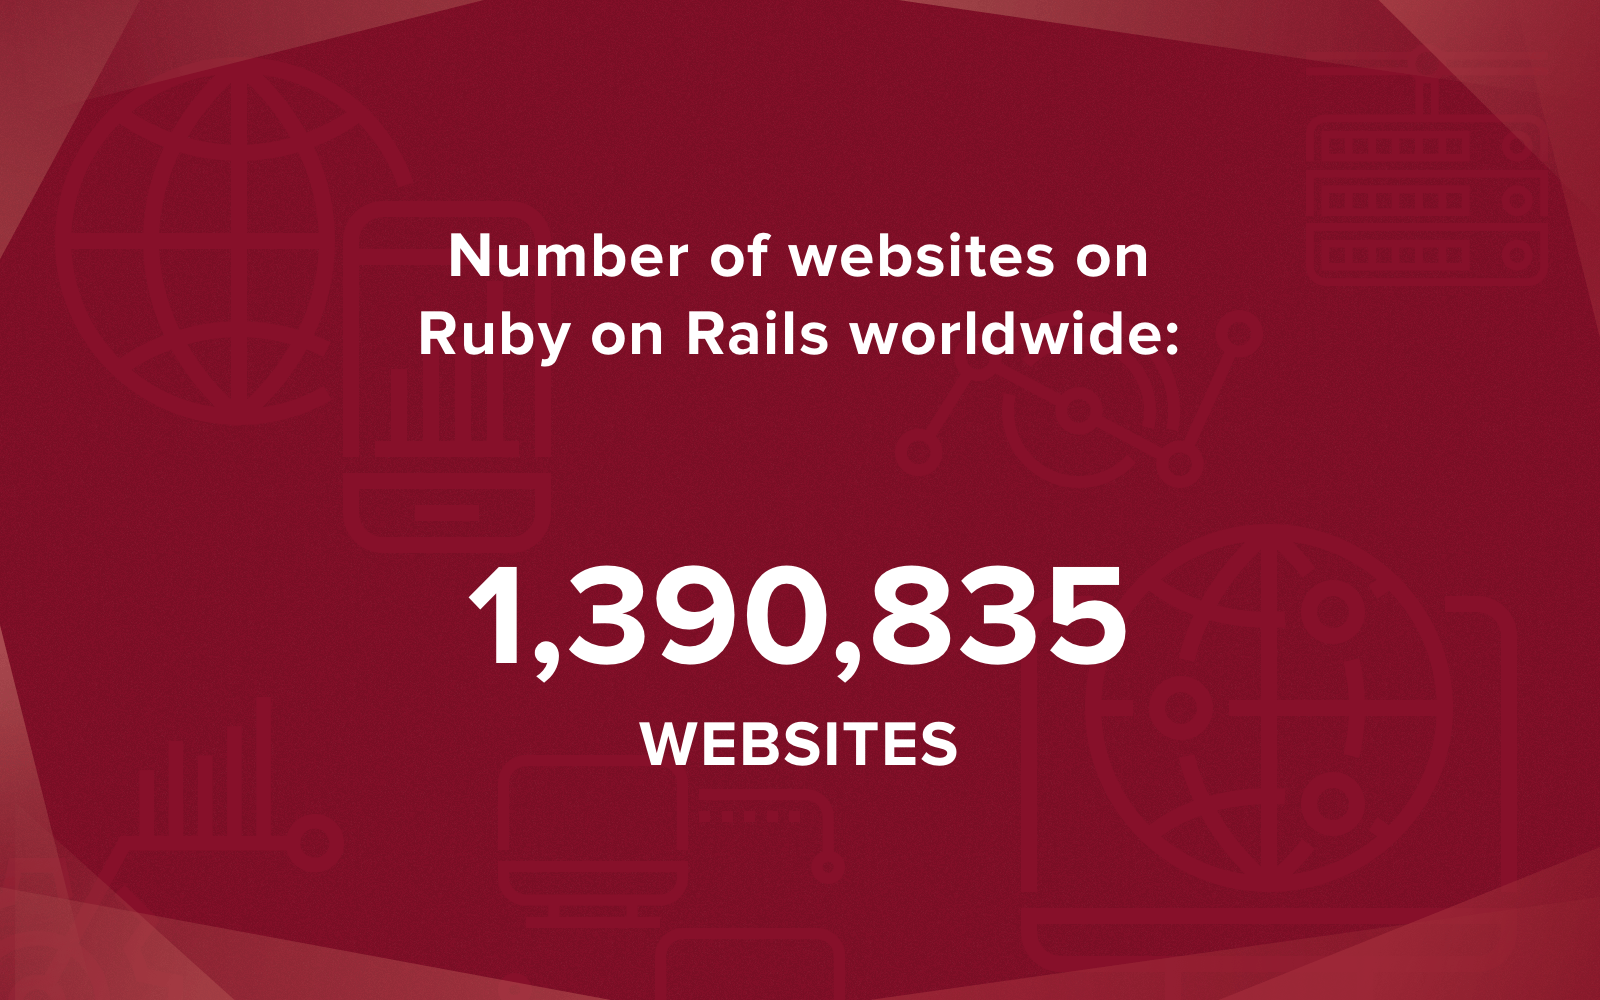 Ruby on Rails web development: Total amount of websites worldwide